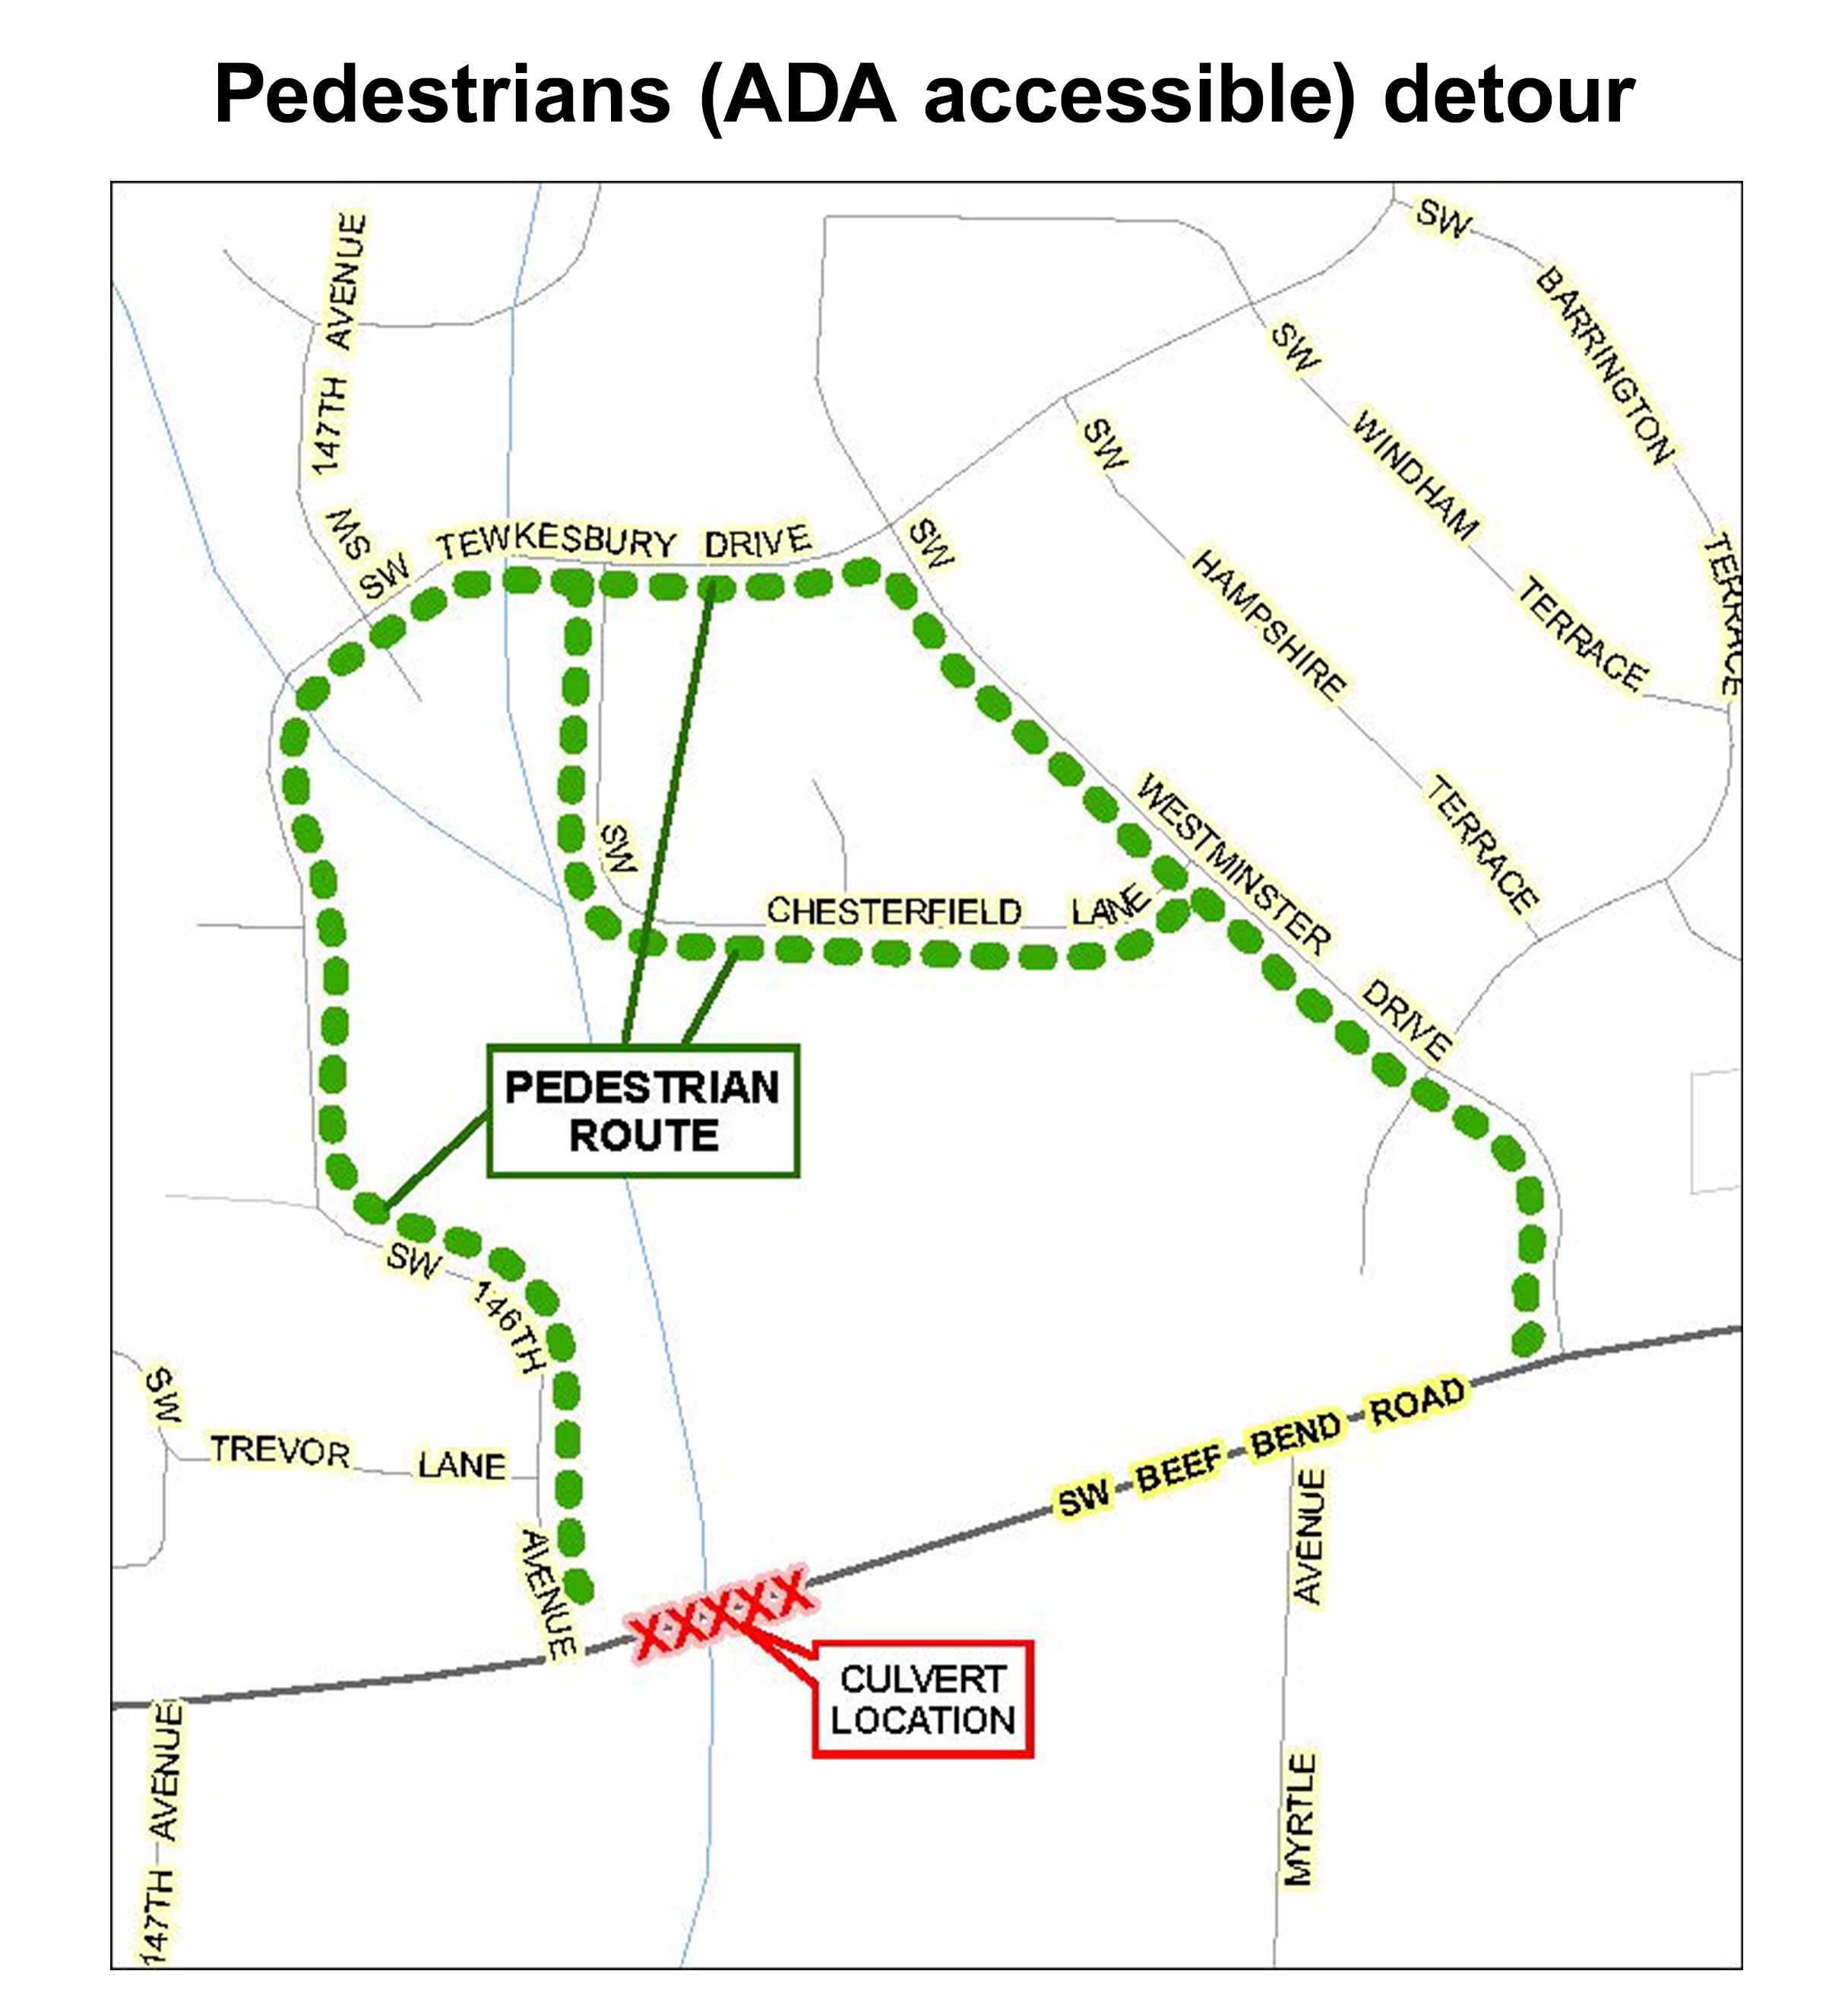 Pedestrians (ADA accessible) detour